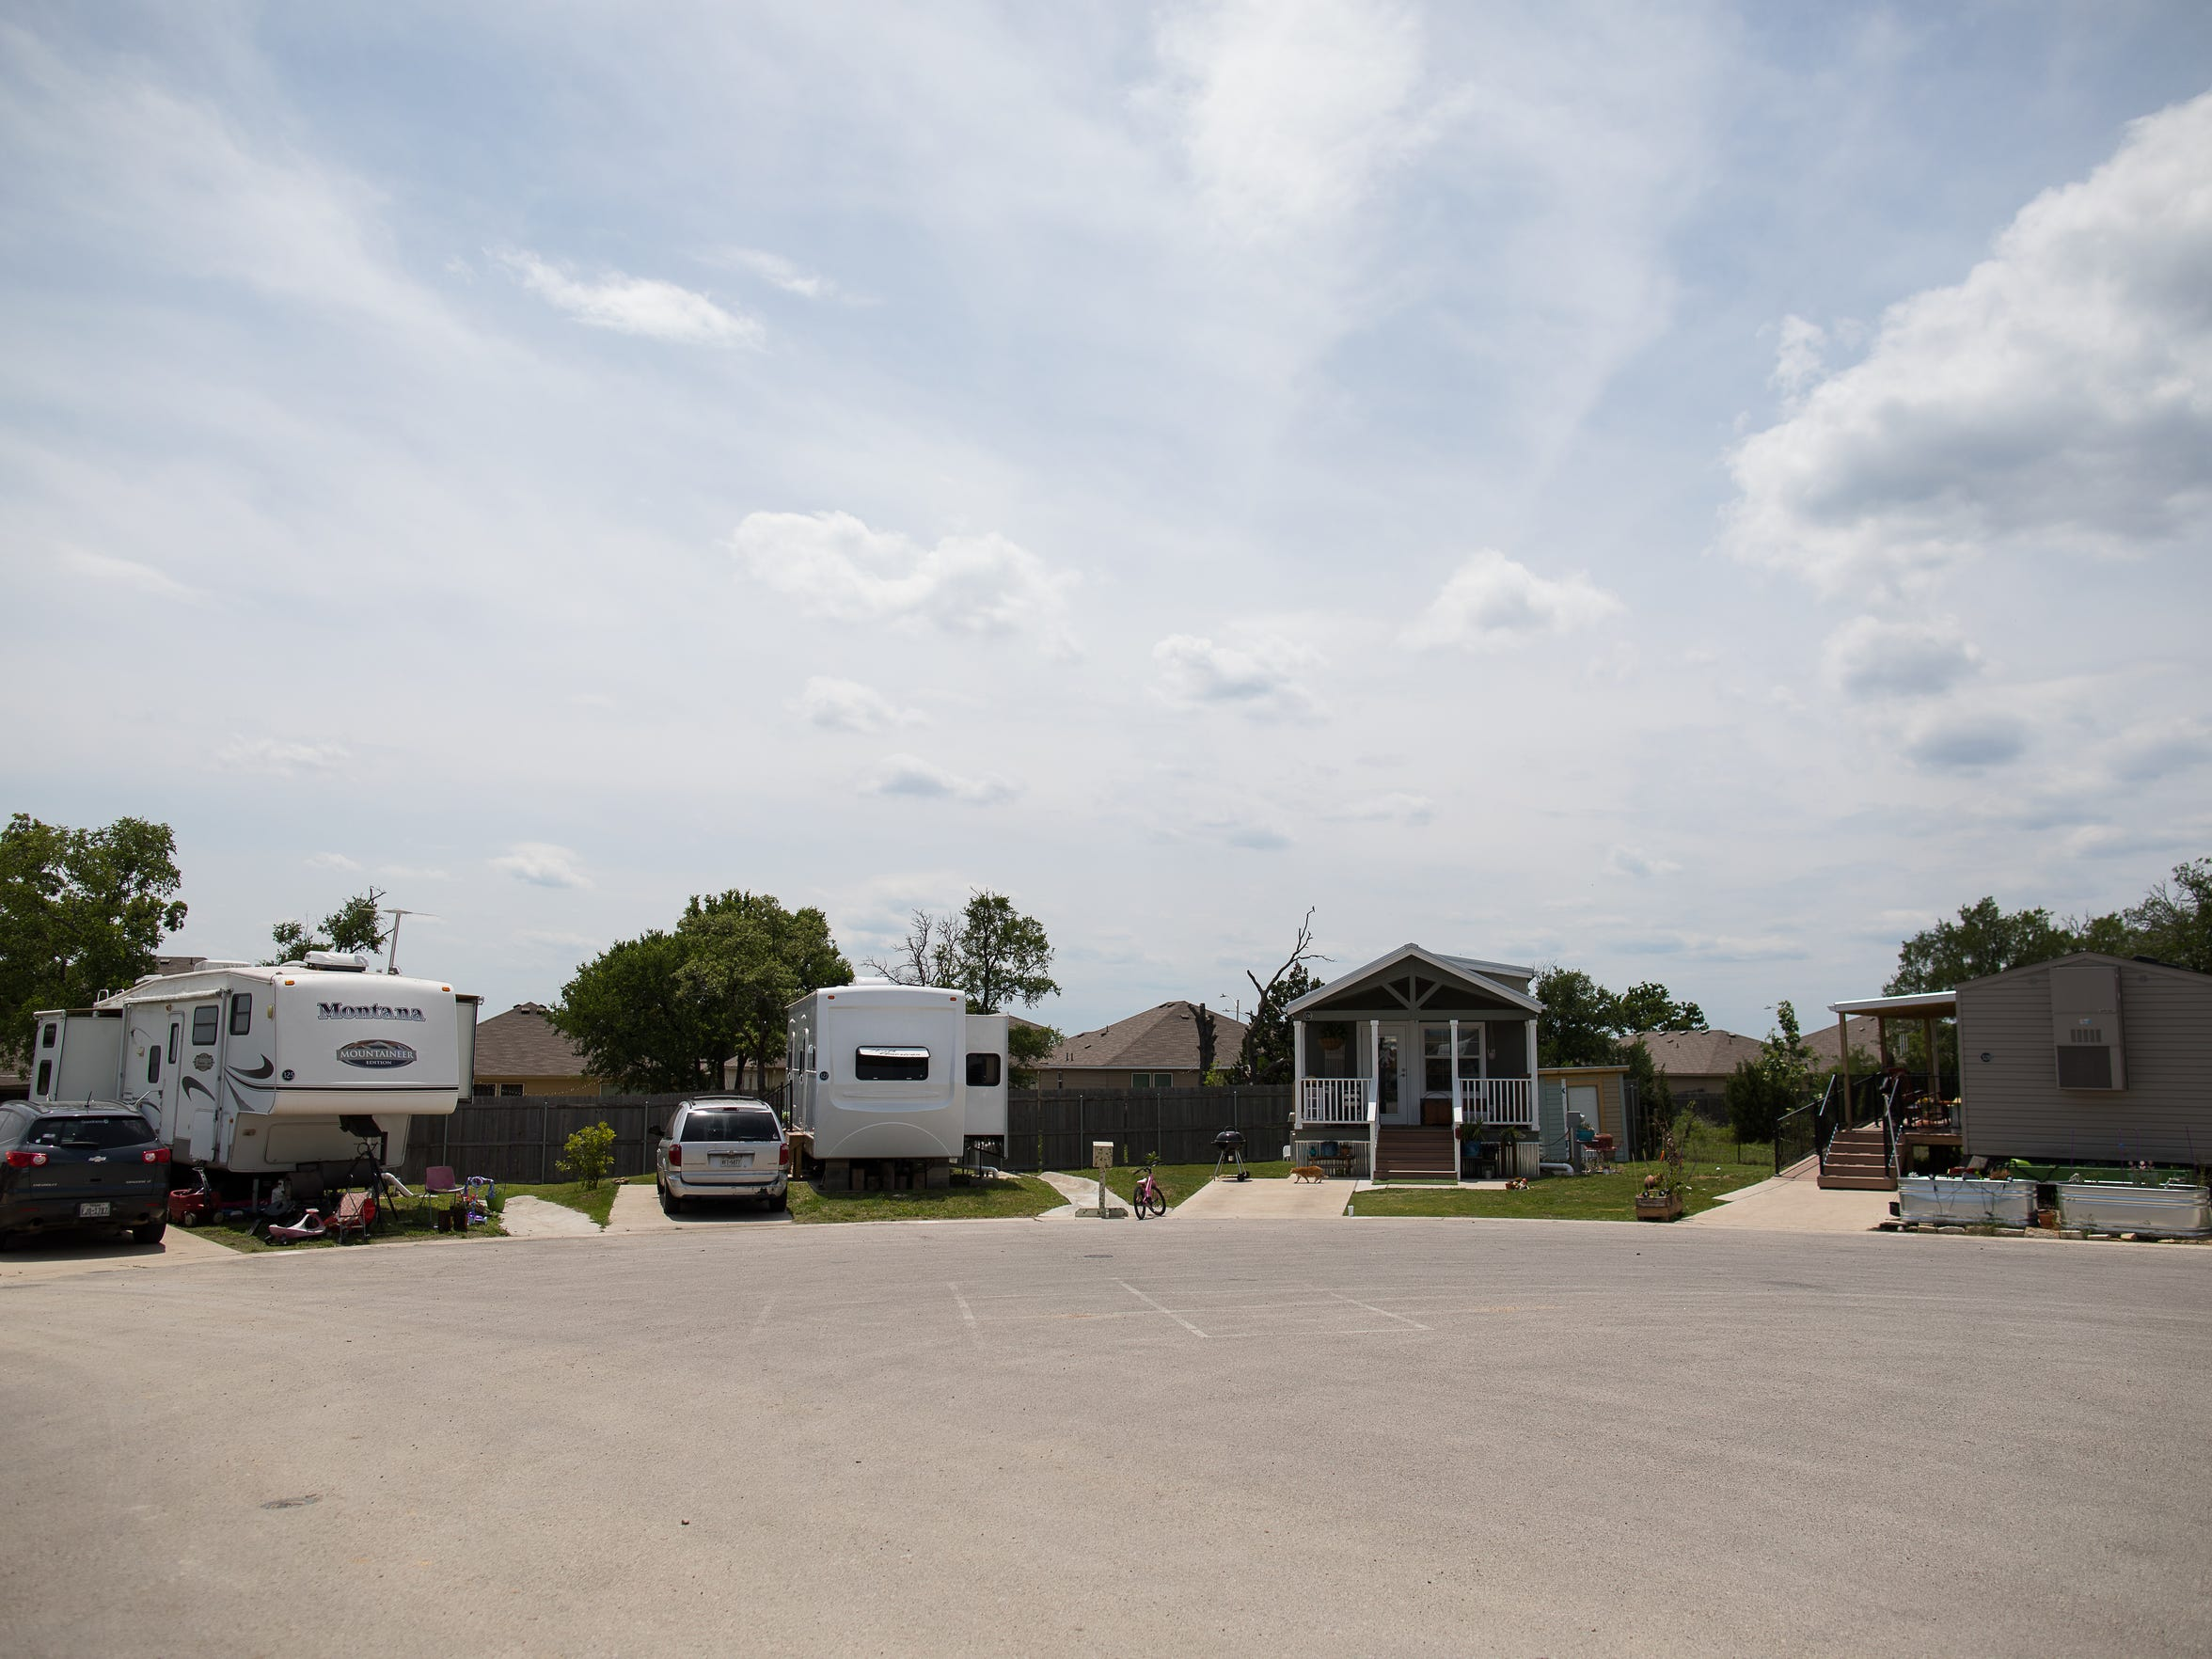 Homes and RV's parked at the end of street in the Community First! Village in Travis County Texas.